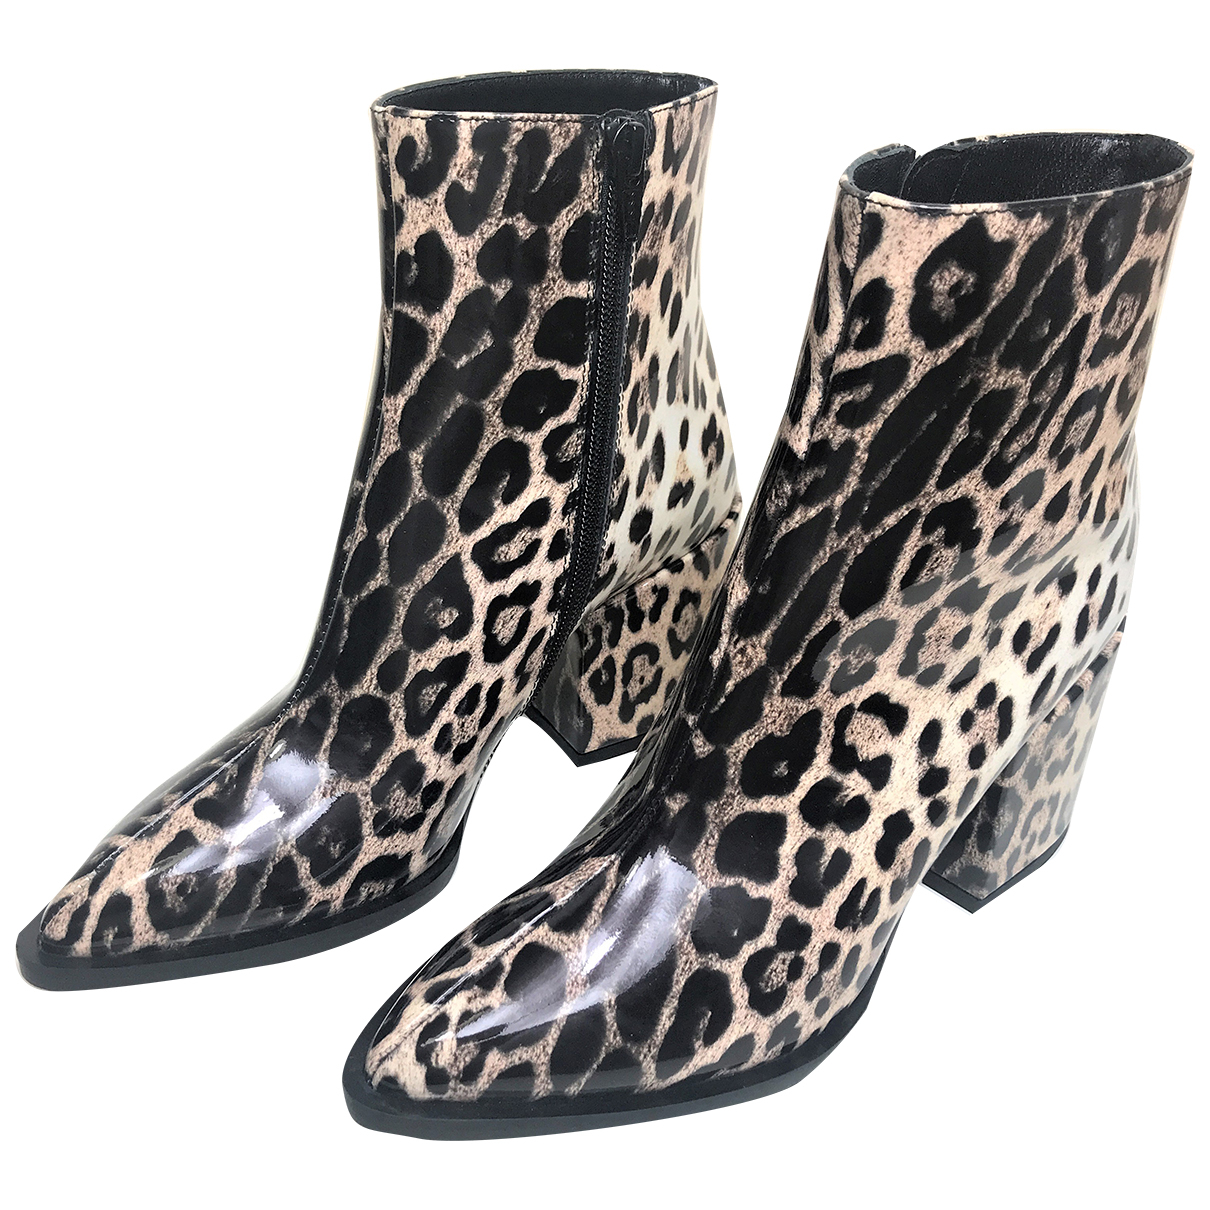 Mcq N Multicolour Patent leather Boots for Women 37 IT